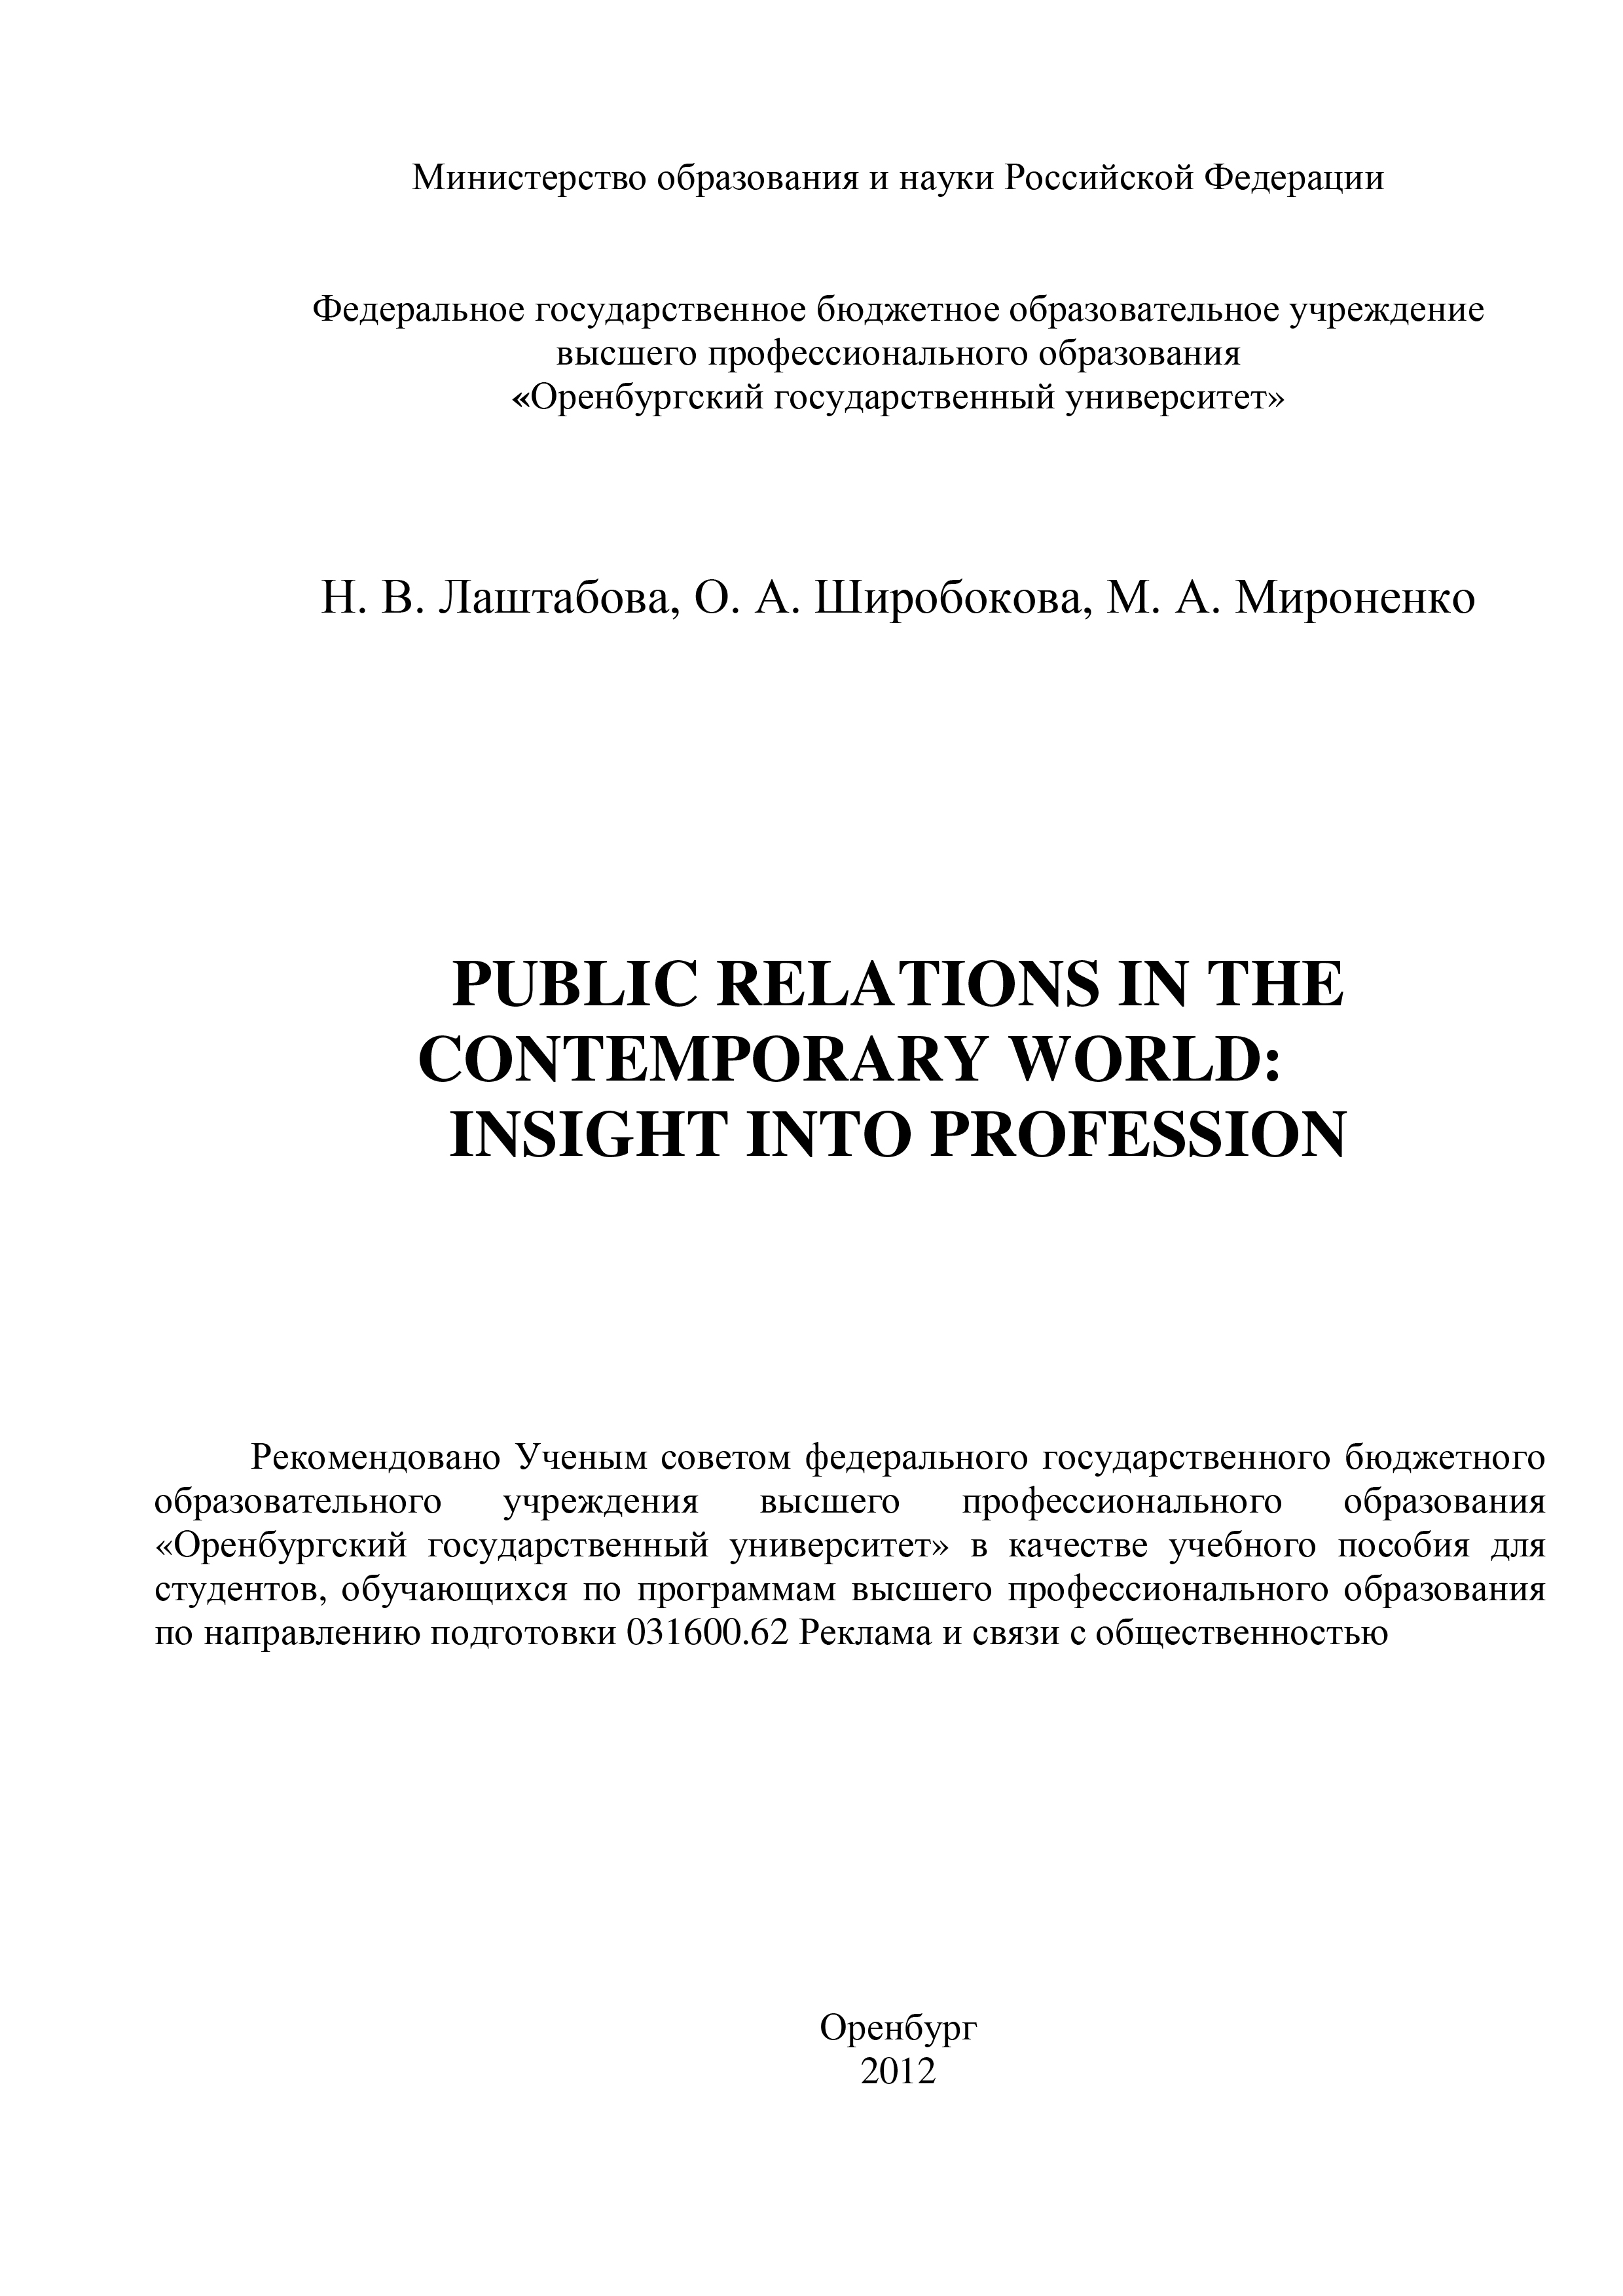 Public Relations in the contemporary world: Insight into Profession